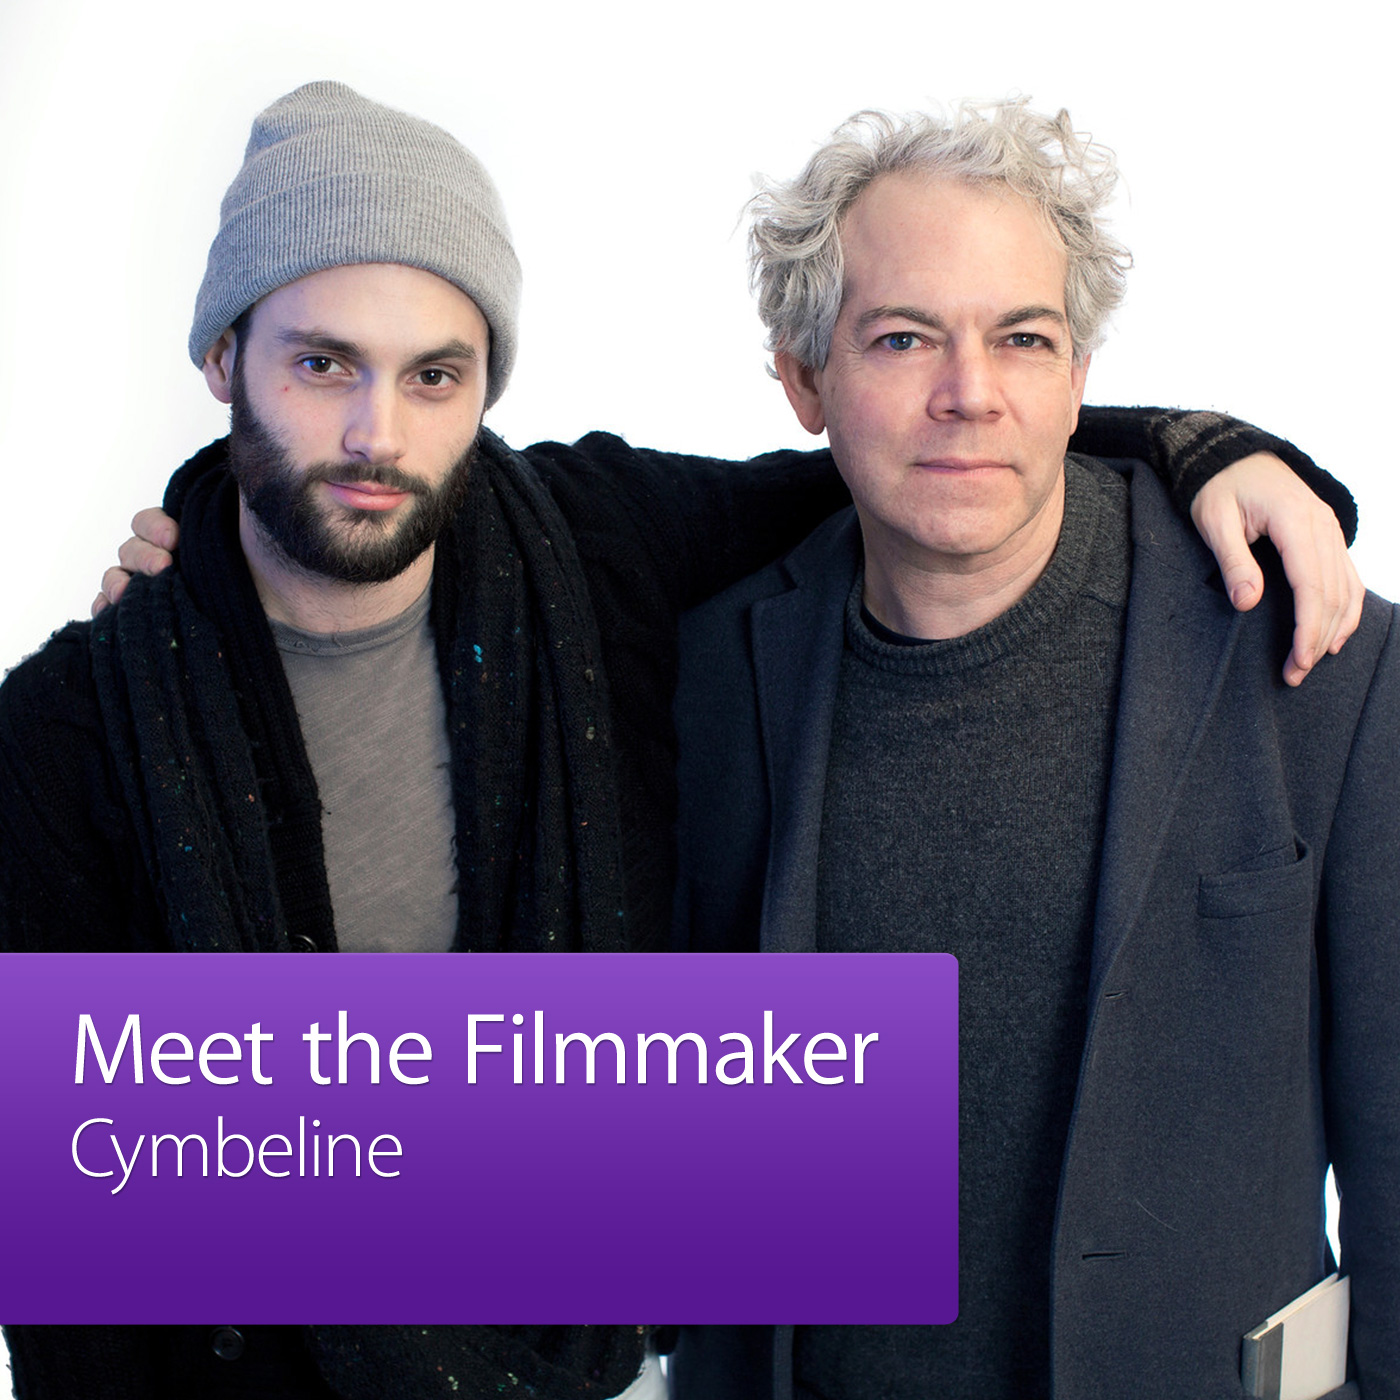 Cymbeline: Meet The Filmmaker